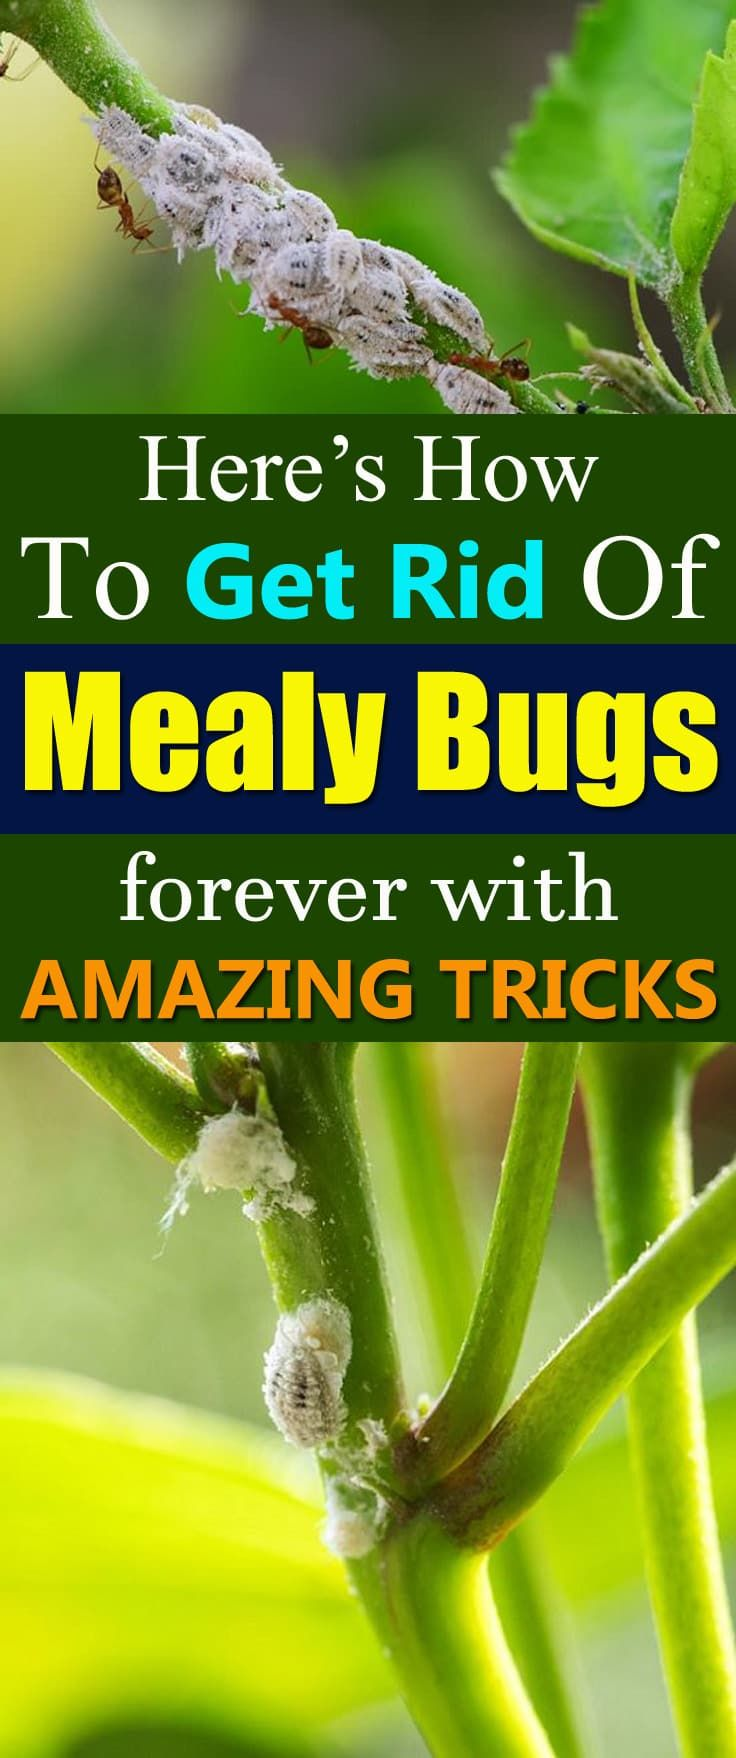 8 Effective Tricks To Get Rid Of Mealybugs #bonsaiplants